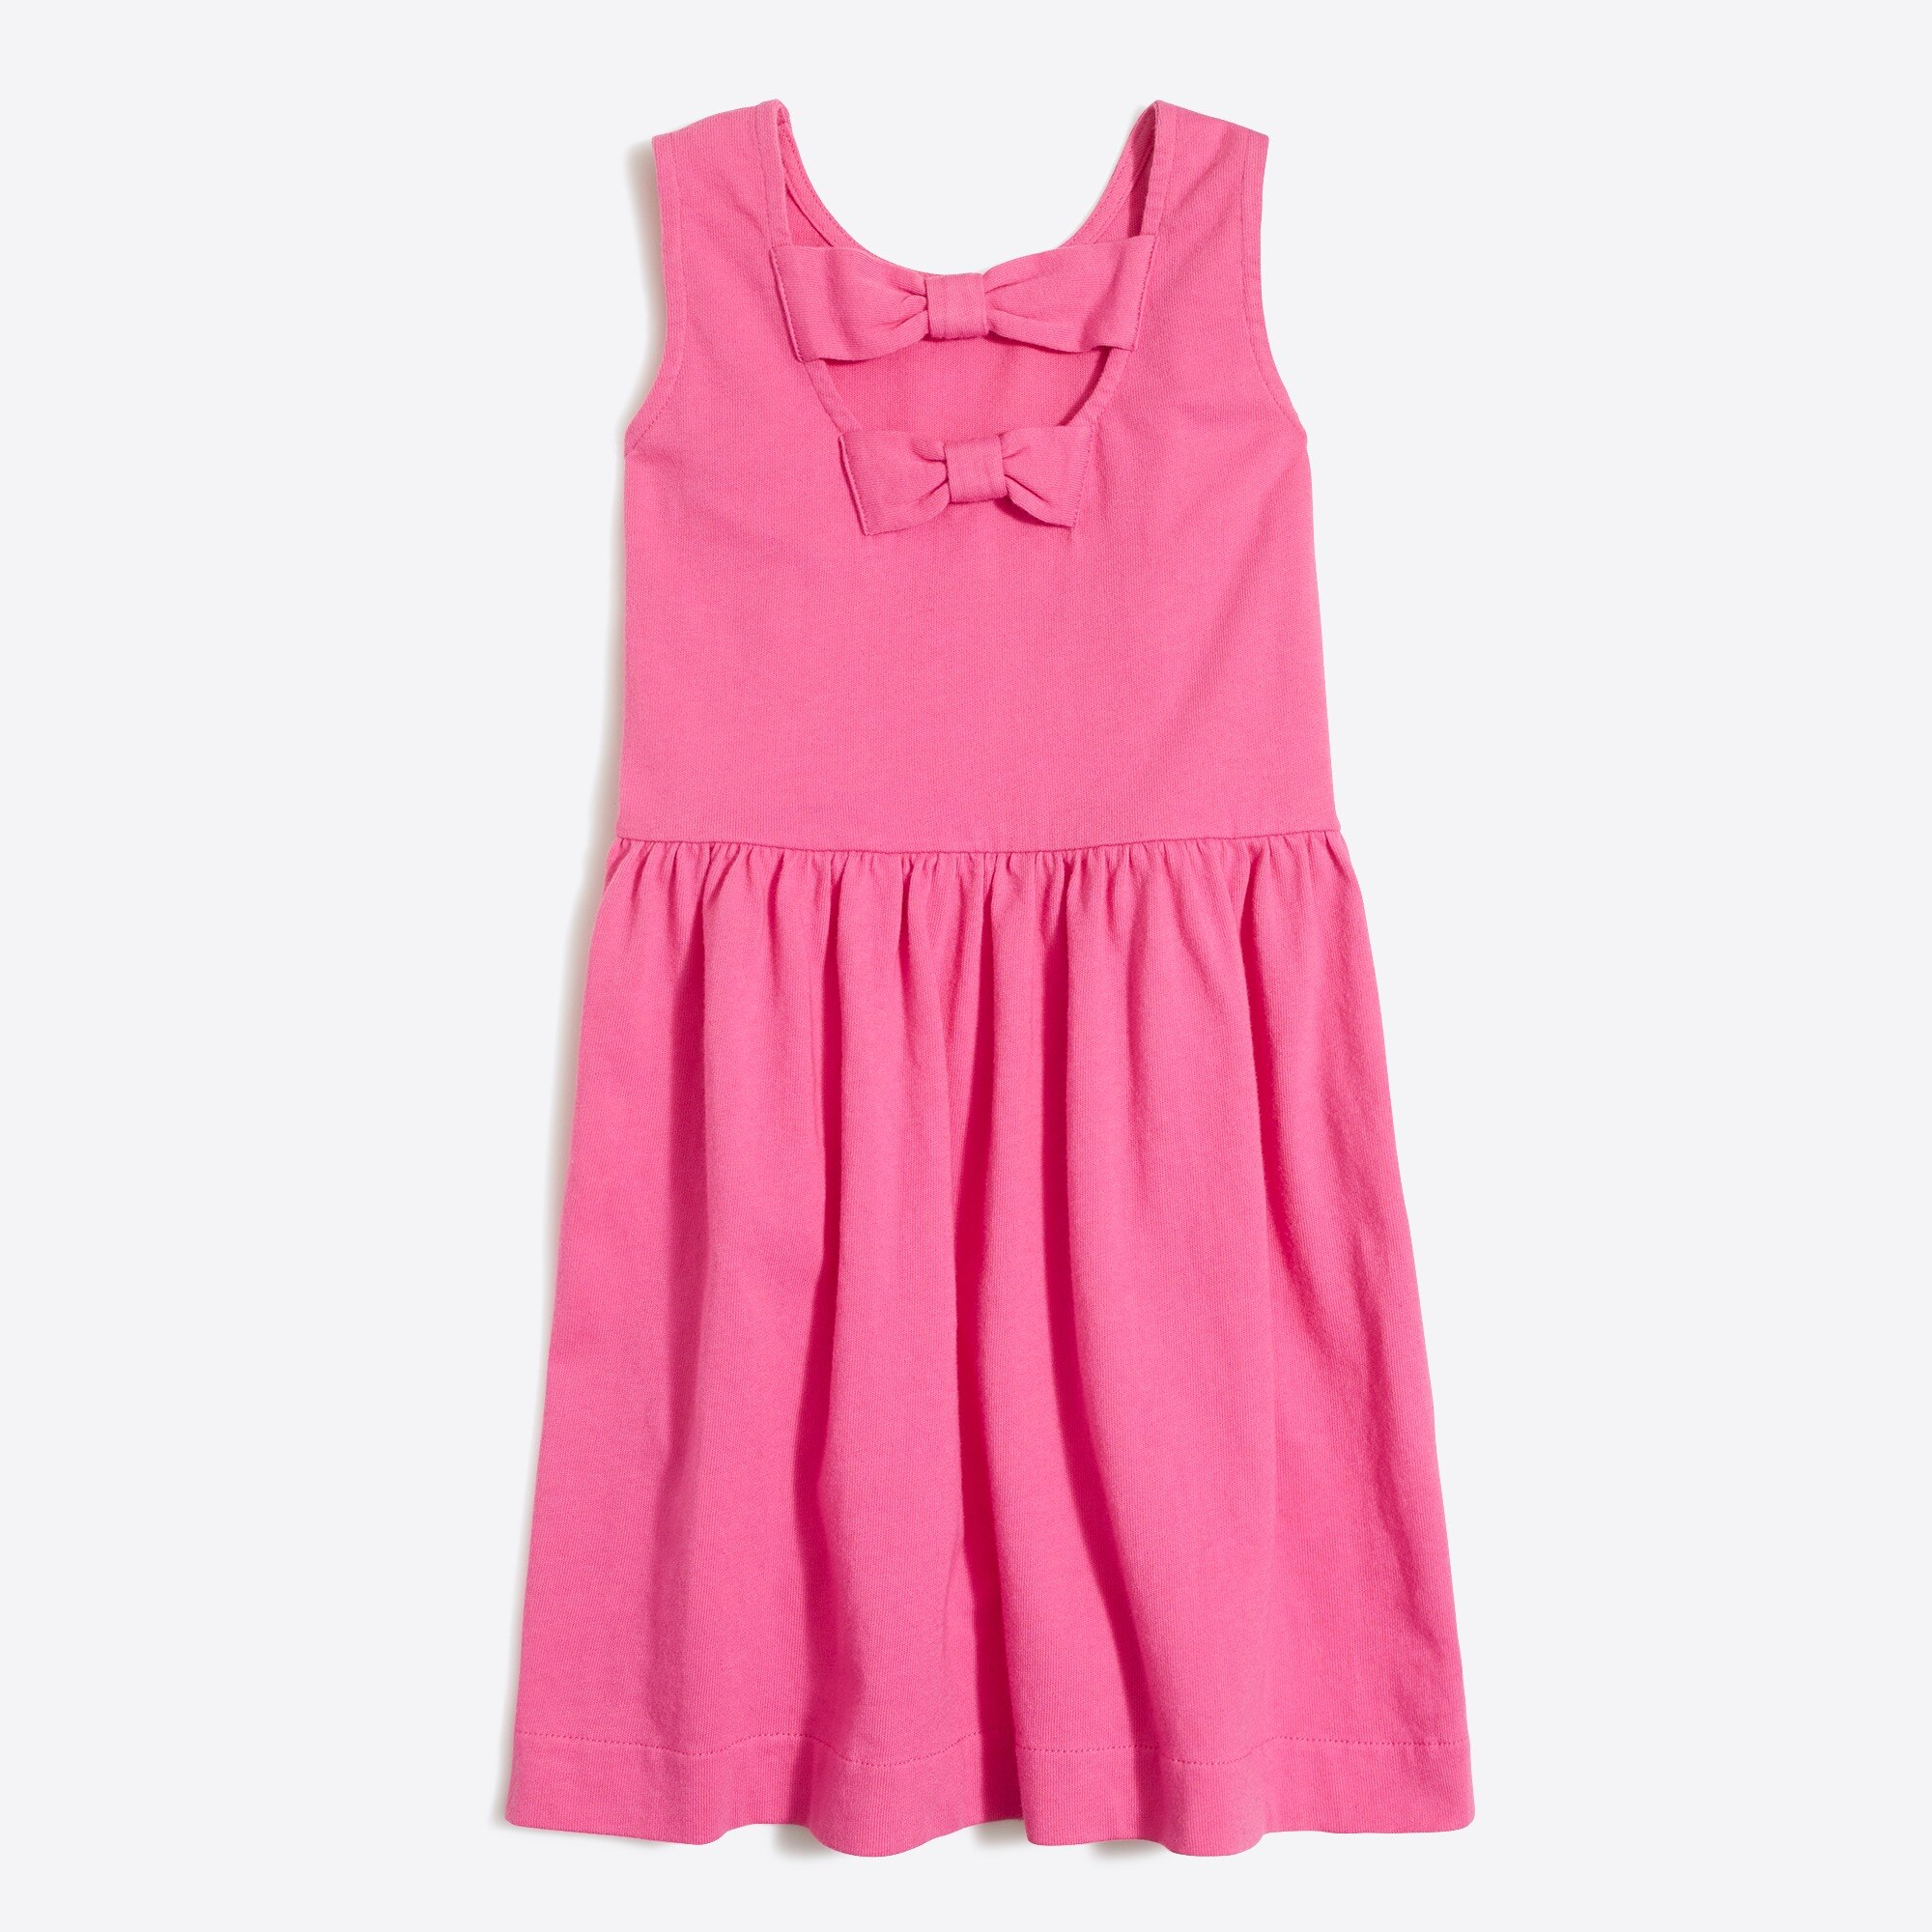 Image 2 for Girls' double-bowback dress